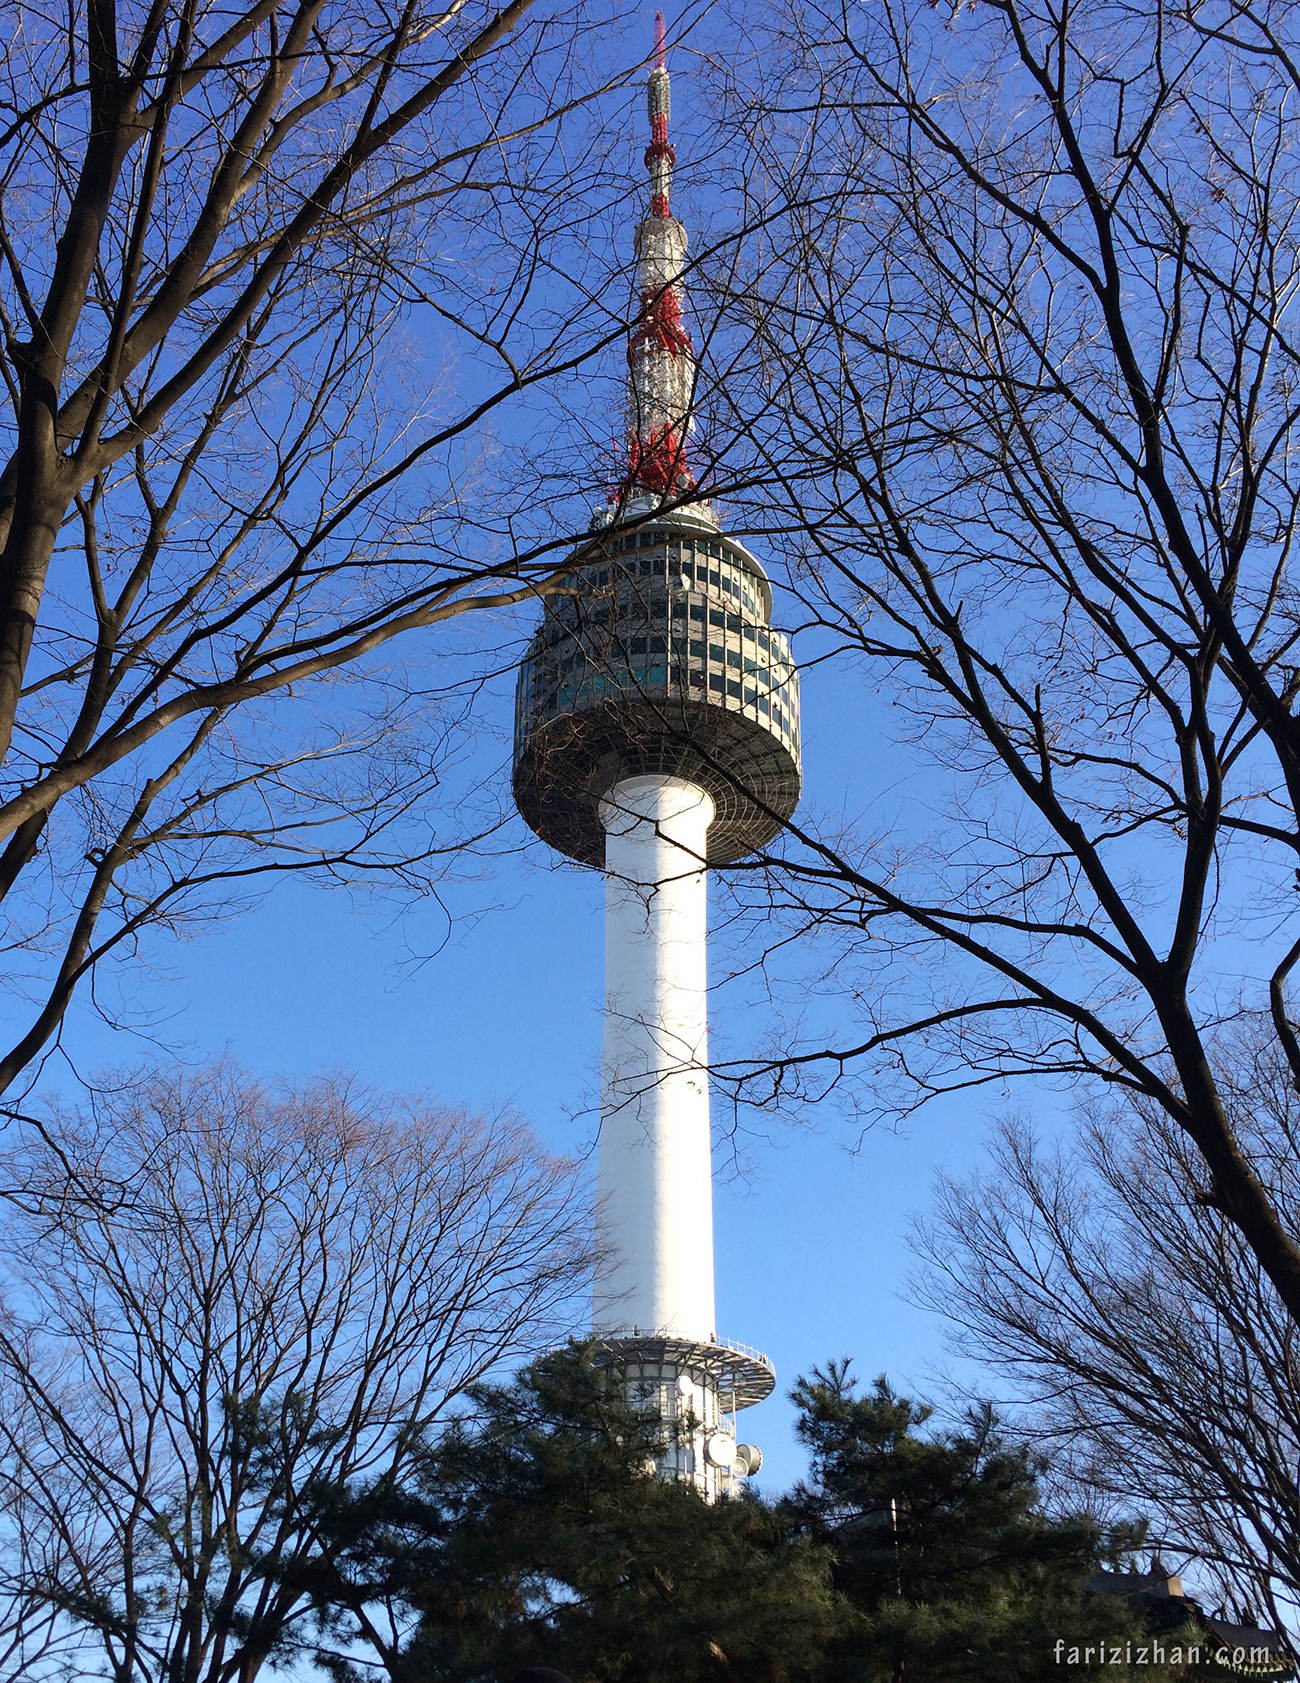 Seoul Tower - iPhone 5s